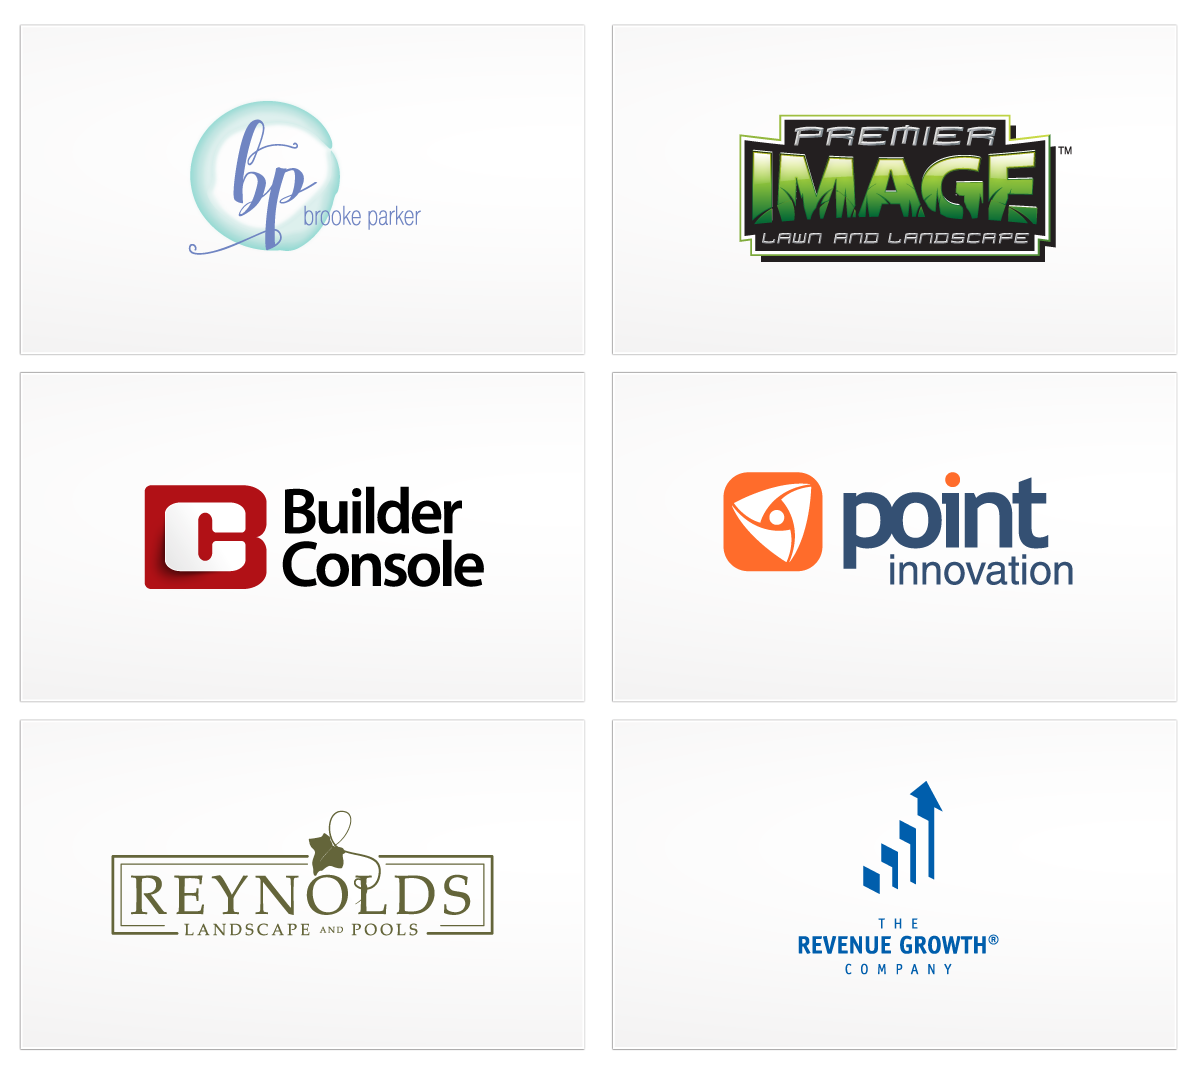 Corporate Logo Designs If You Need A Logo Contact My Design Firm Corporate Logo Design Logo Design Design Firms